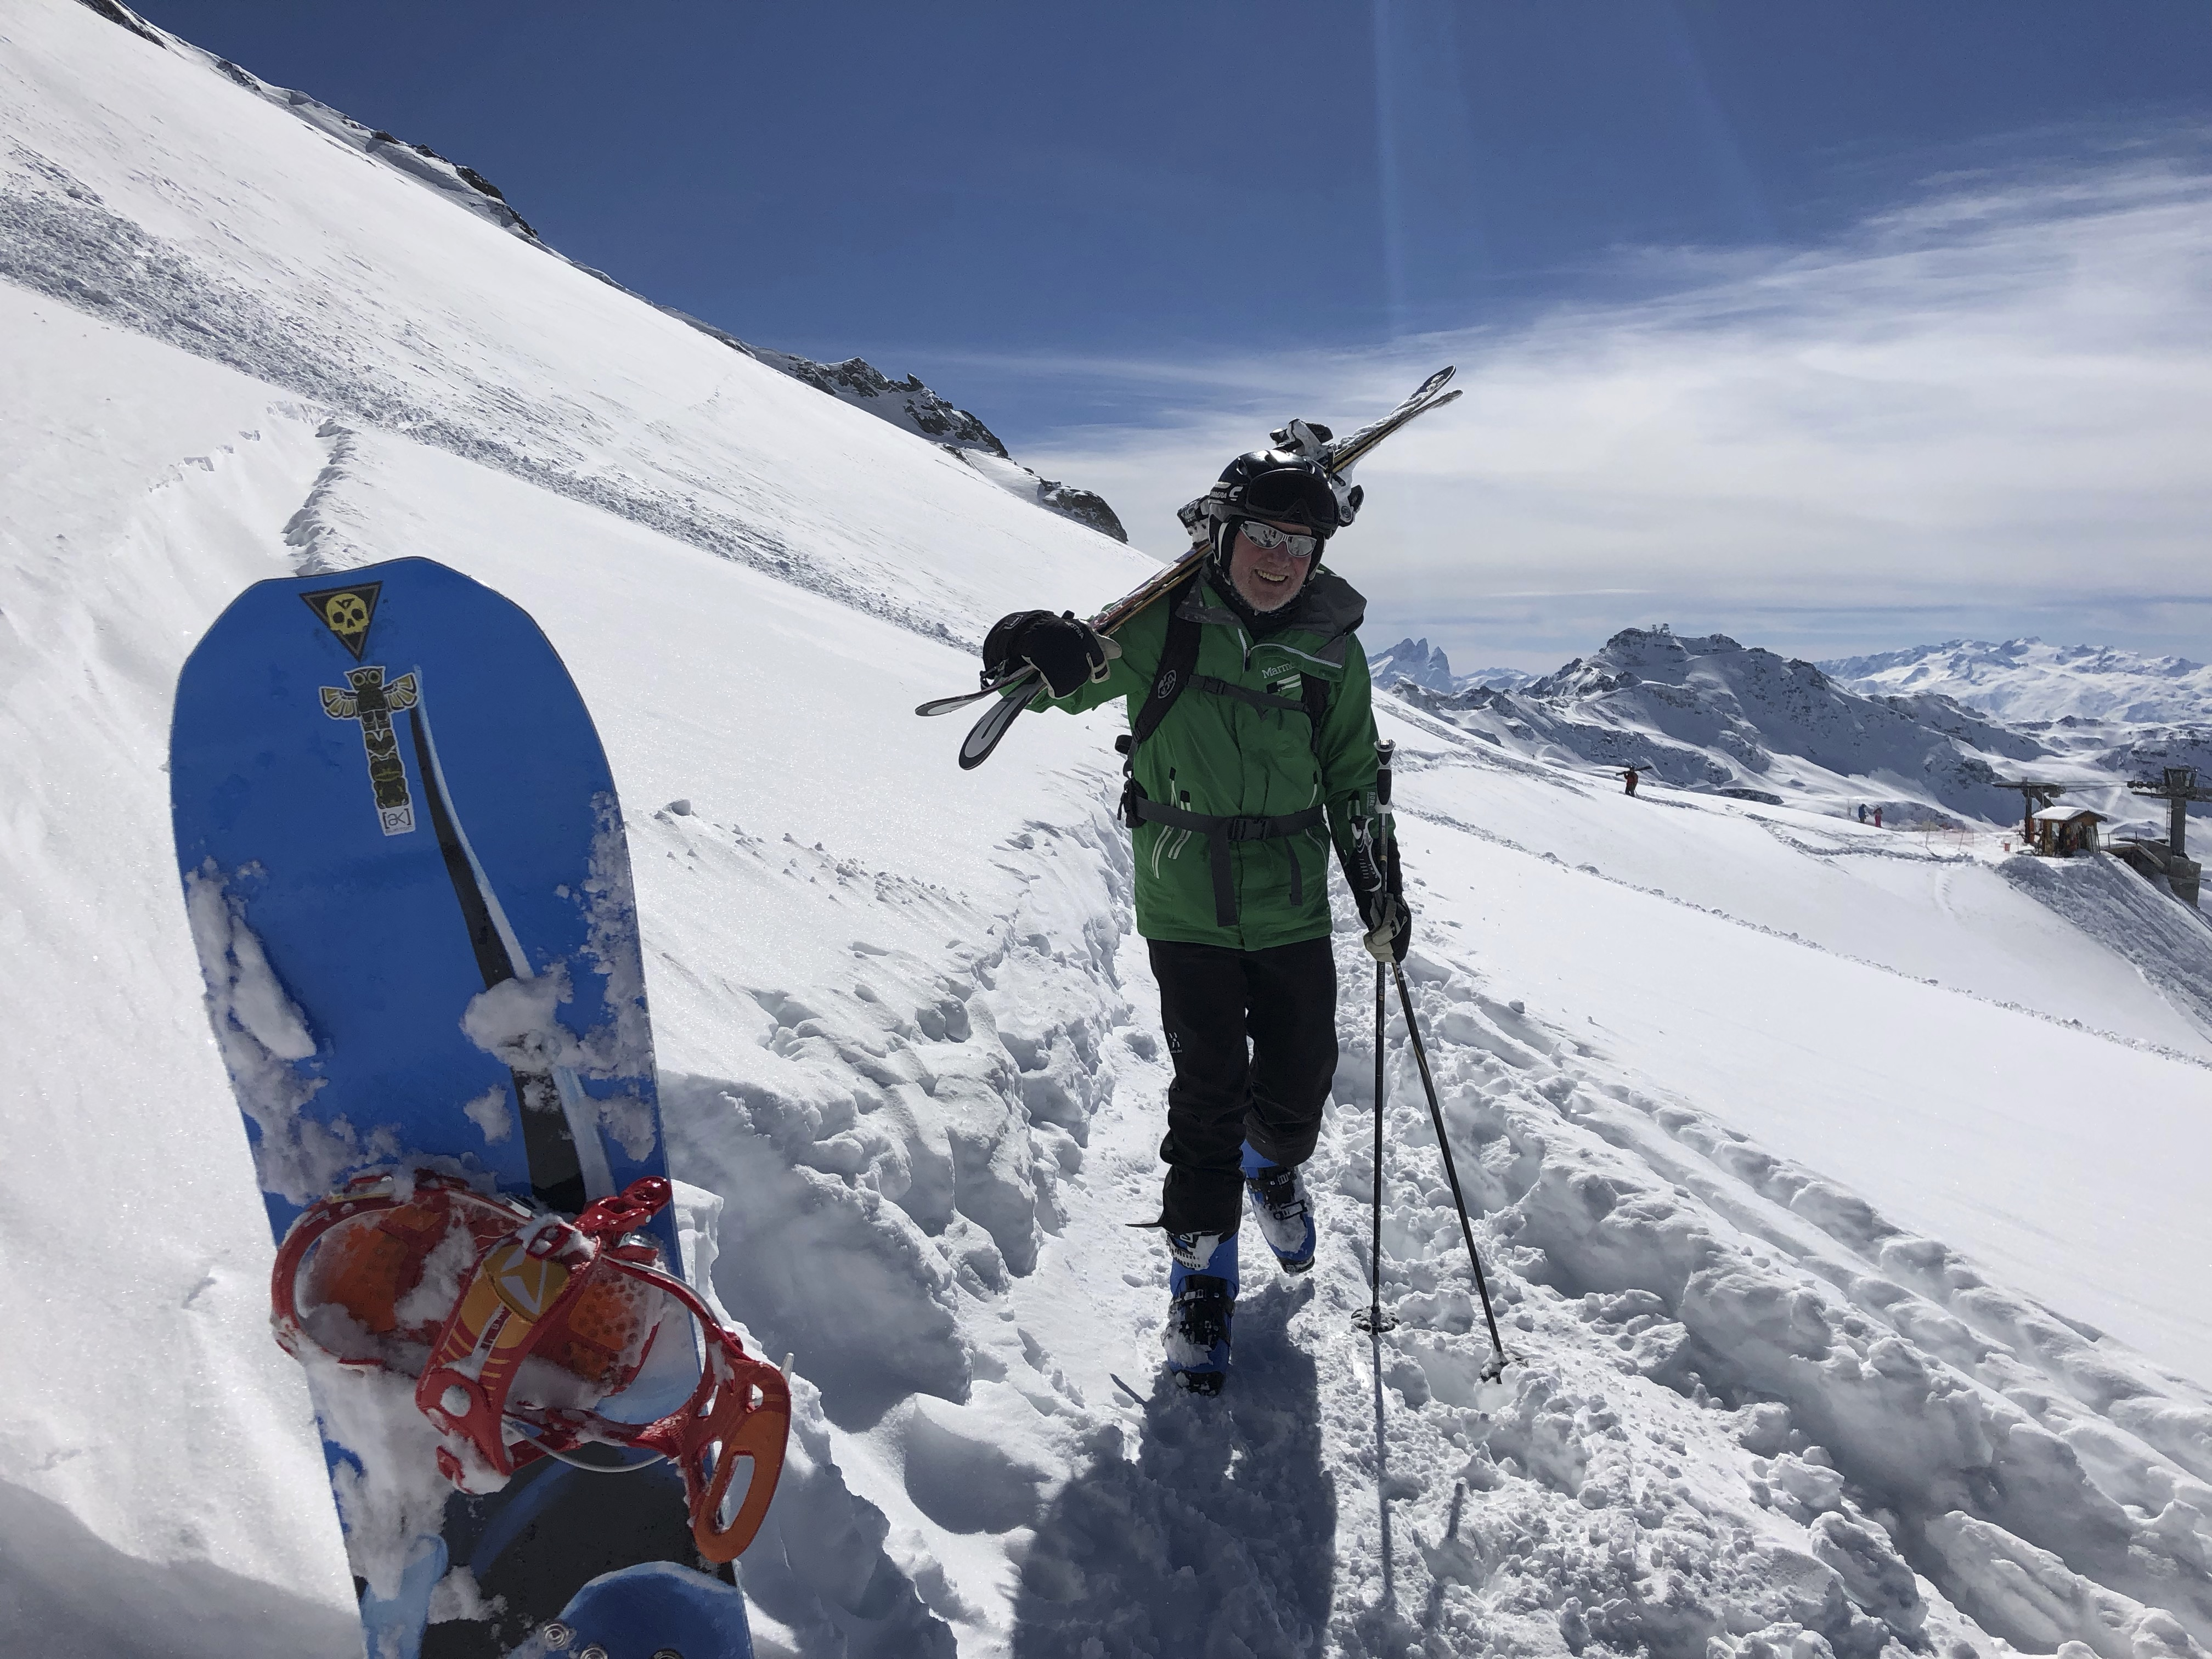 A FSCer skier in carrying his skies.